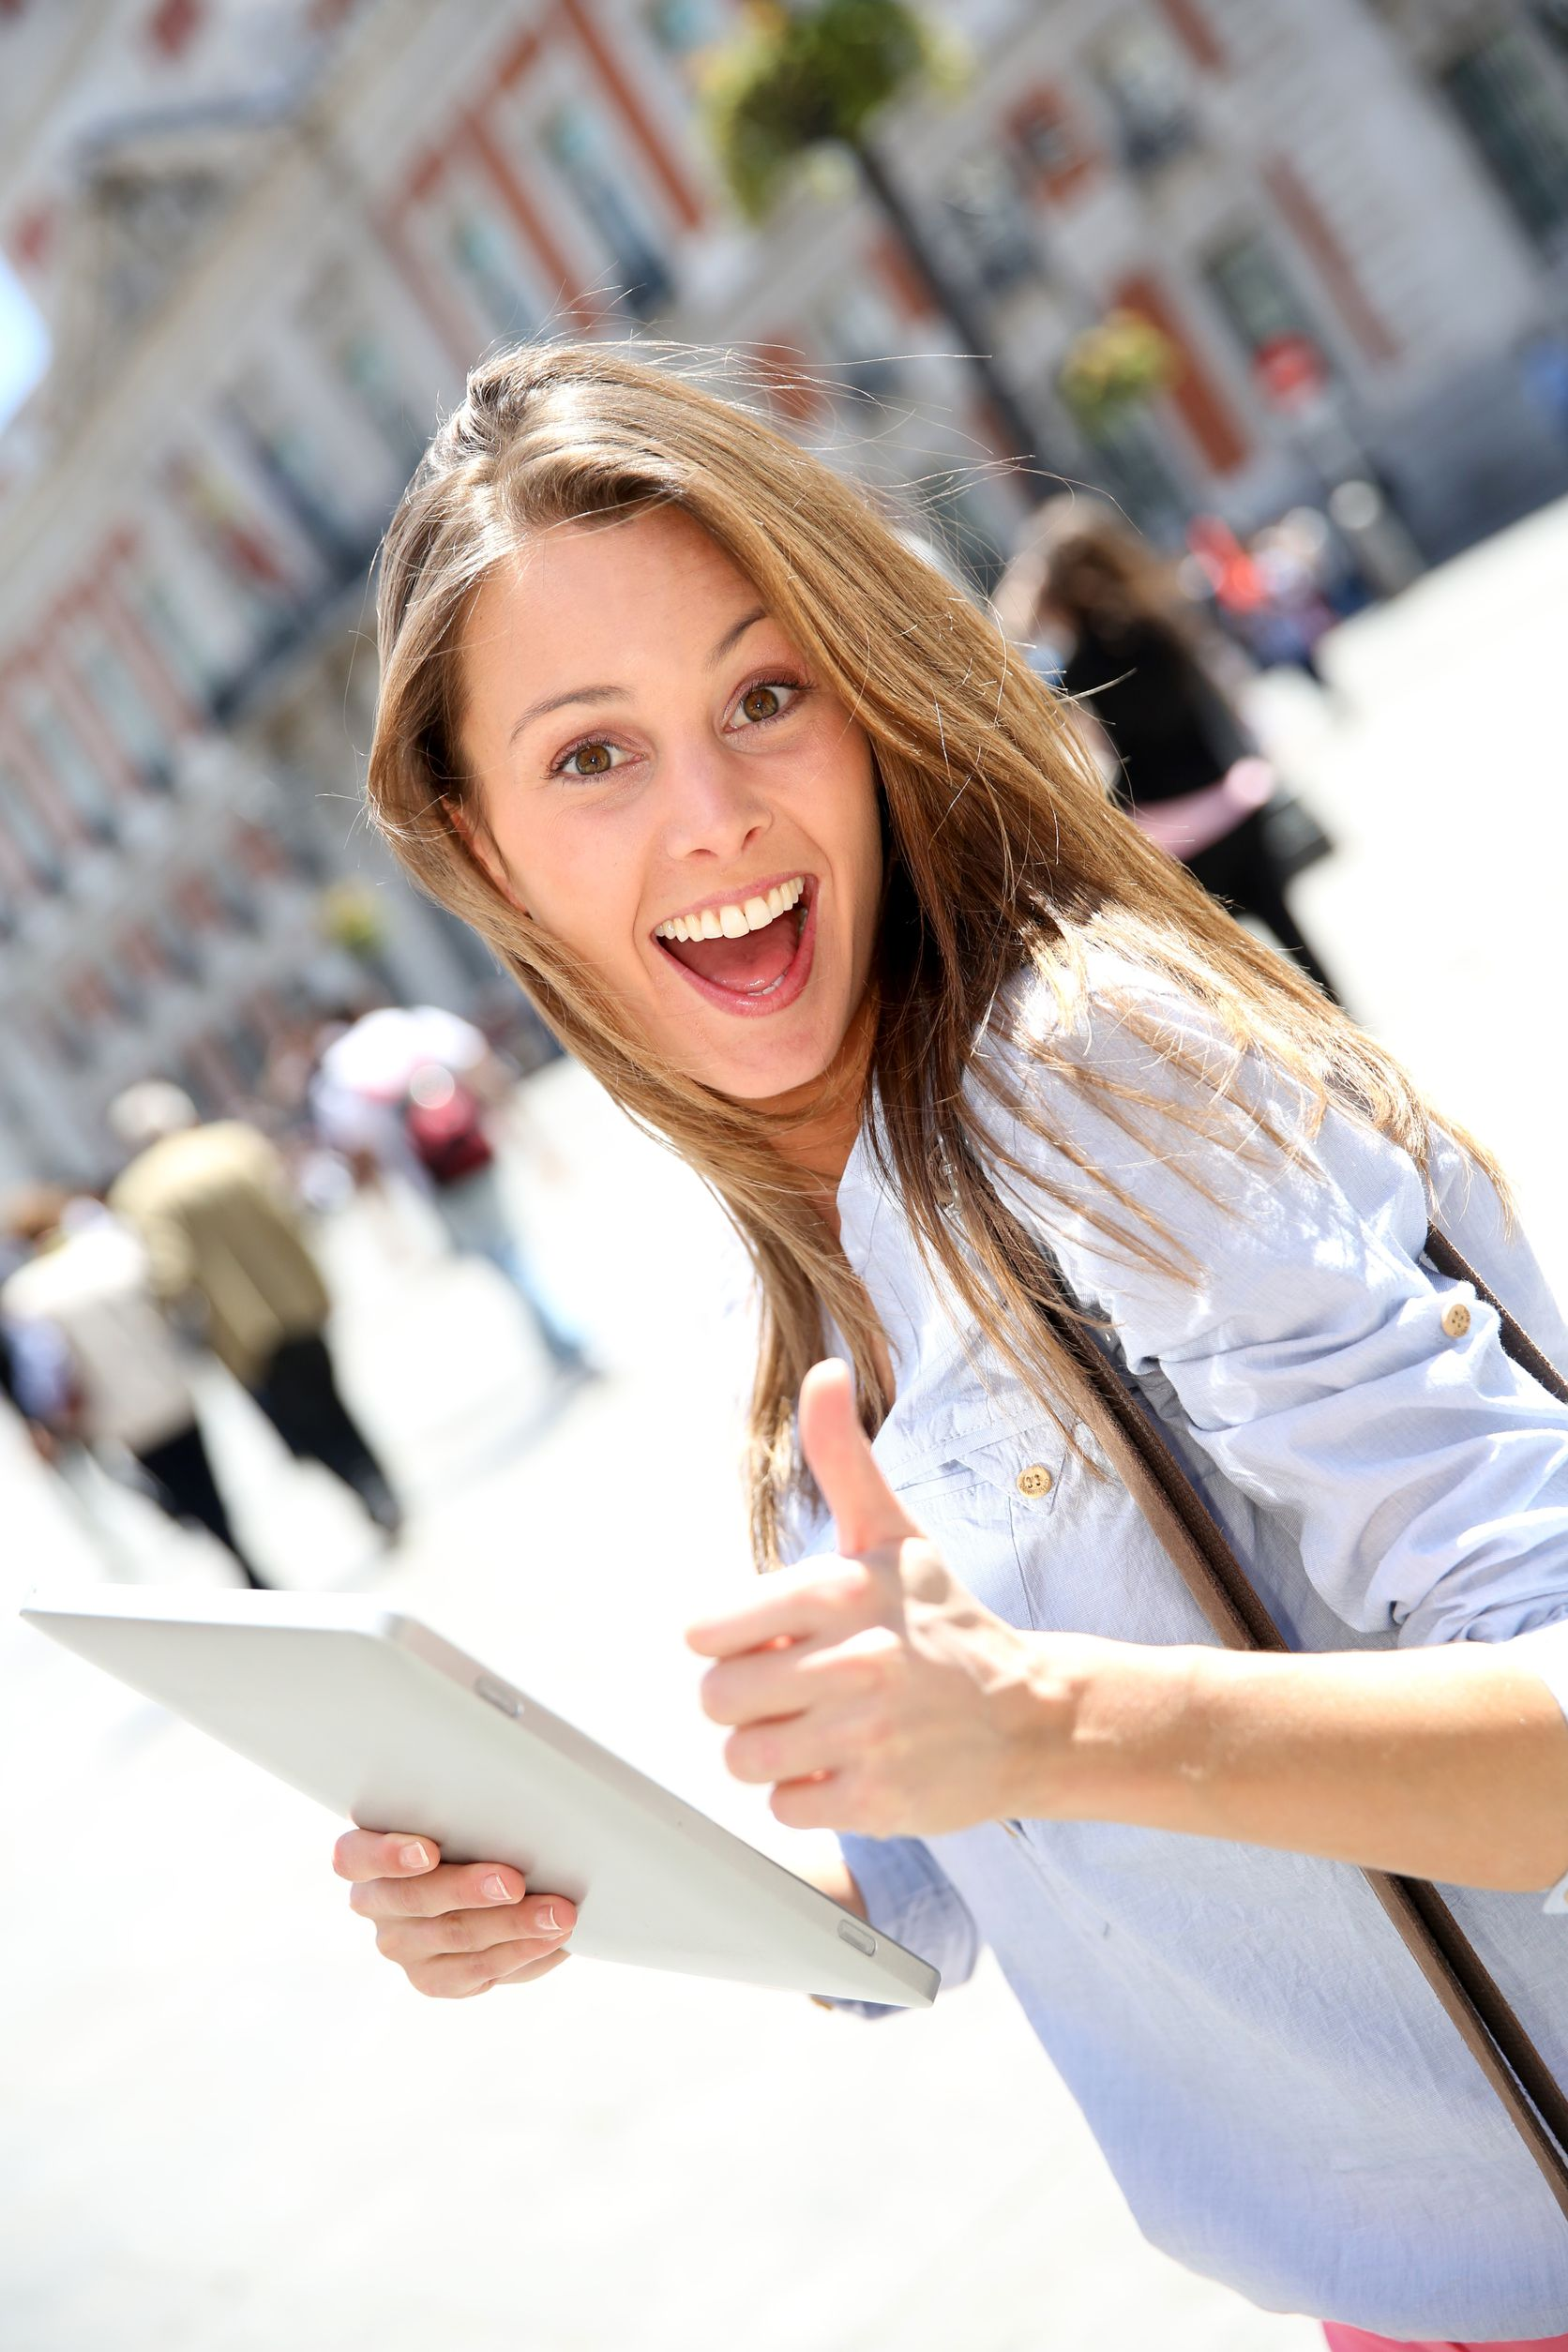 19821833 - cheerful girl with tablet showing thumb up